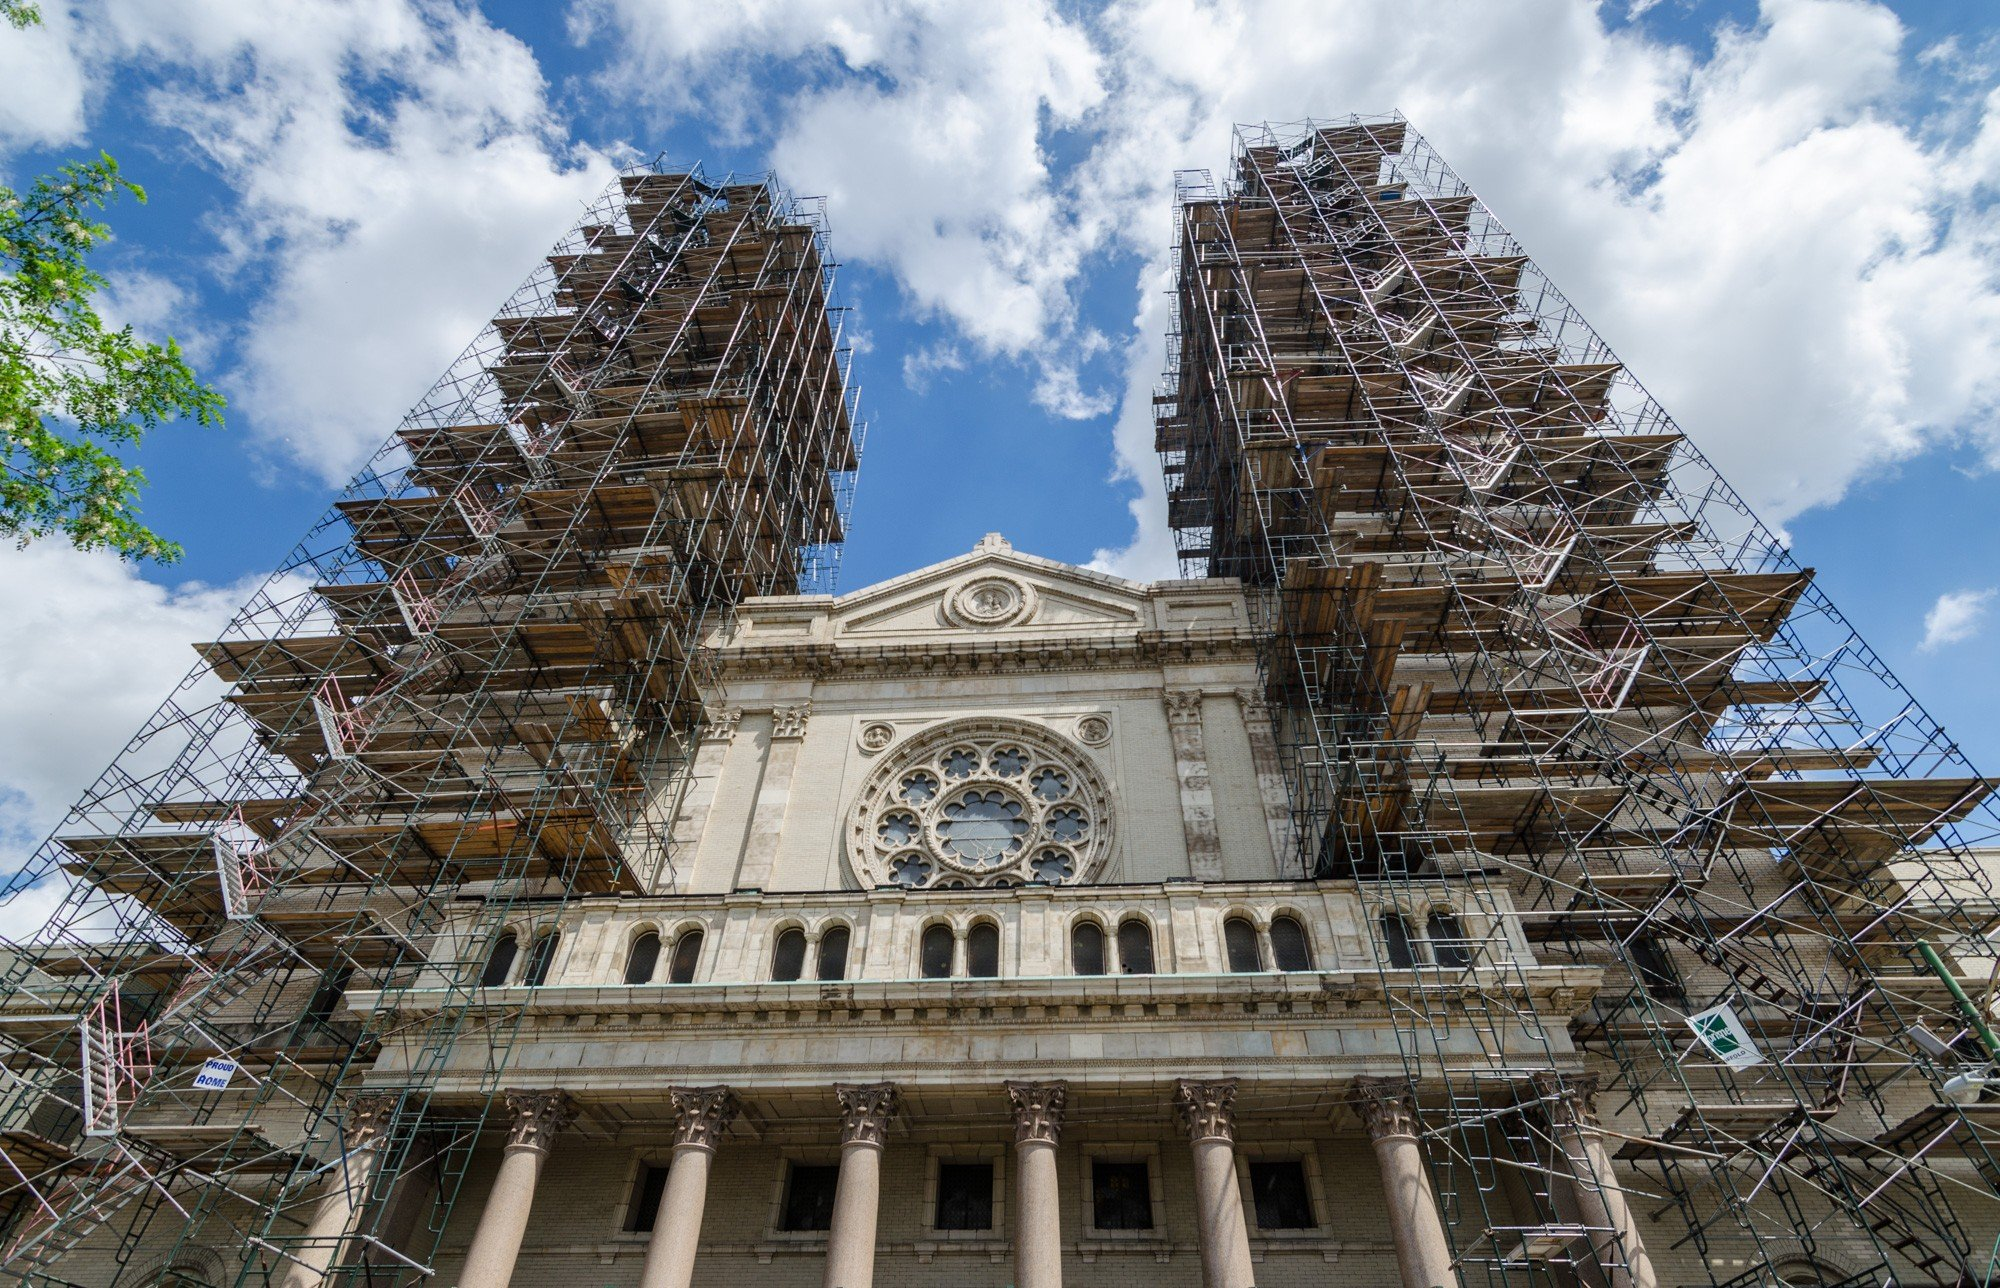 Scaffolds surround each of the two 185-foot bell towers, which allegedly resemble the two Baroque towers of the Basilica of San Juan de Los Lagos in Mexico. 